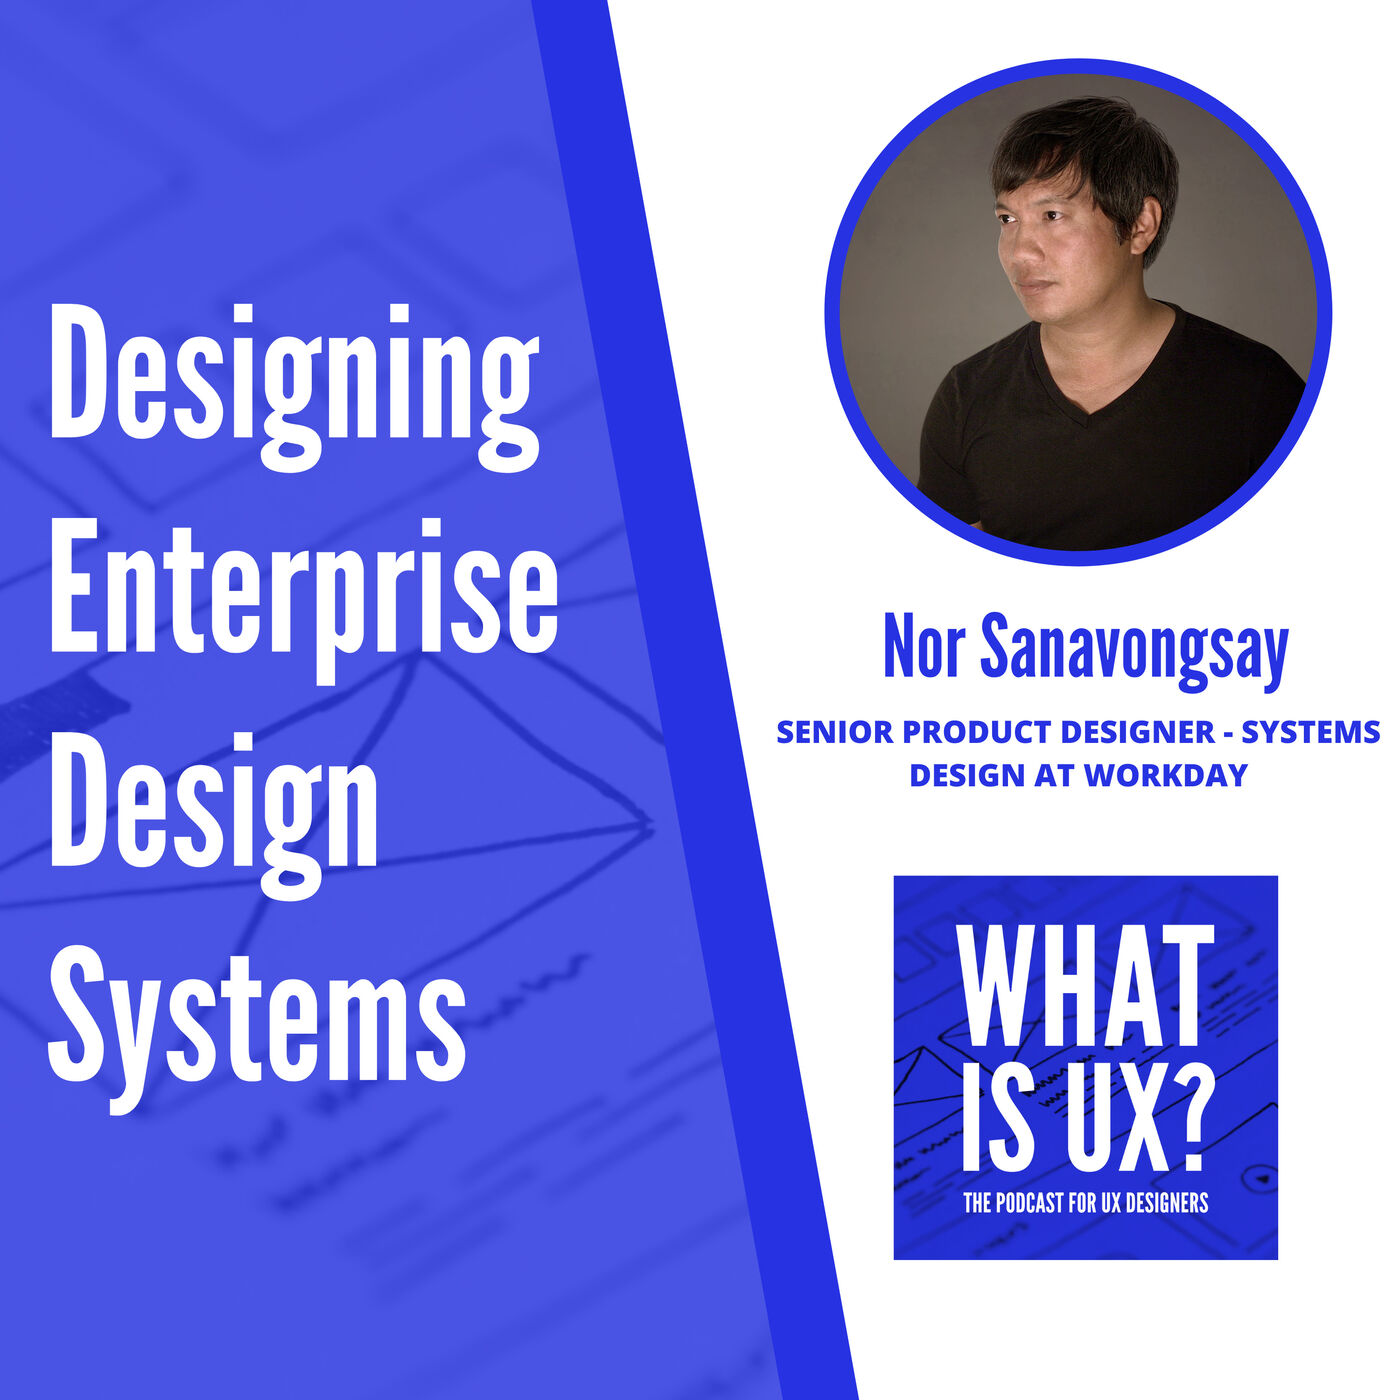 S1E4 Designing Enterprise Design Systems with Nor Sanavongsay